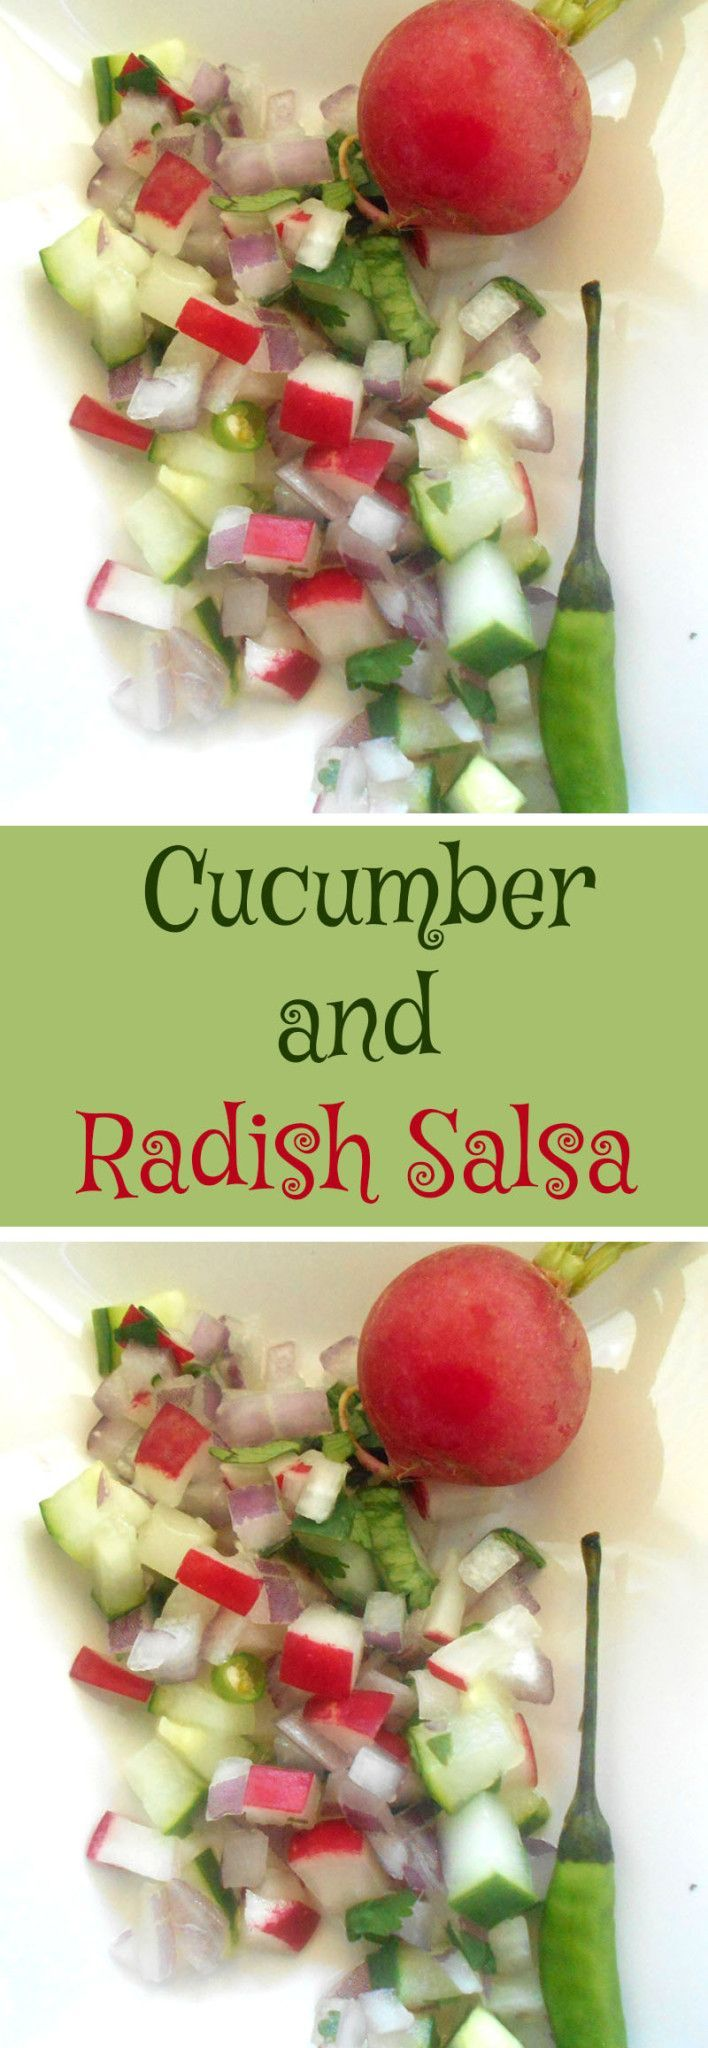 Crunchy cucumber salsa made with radishes and onions. Perfect tailgating snack for any game day gathering. Comfort food that also happens to be healthy and lo carb